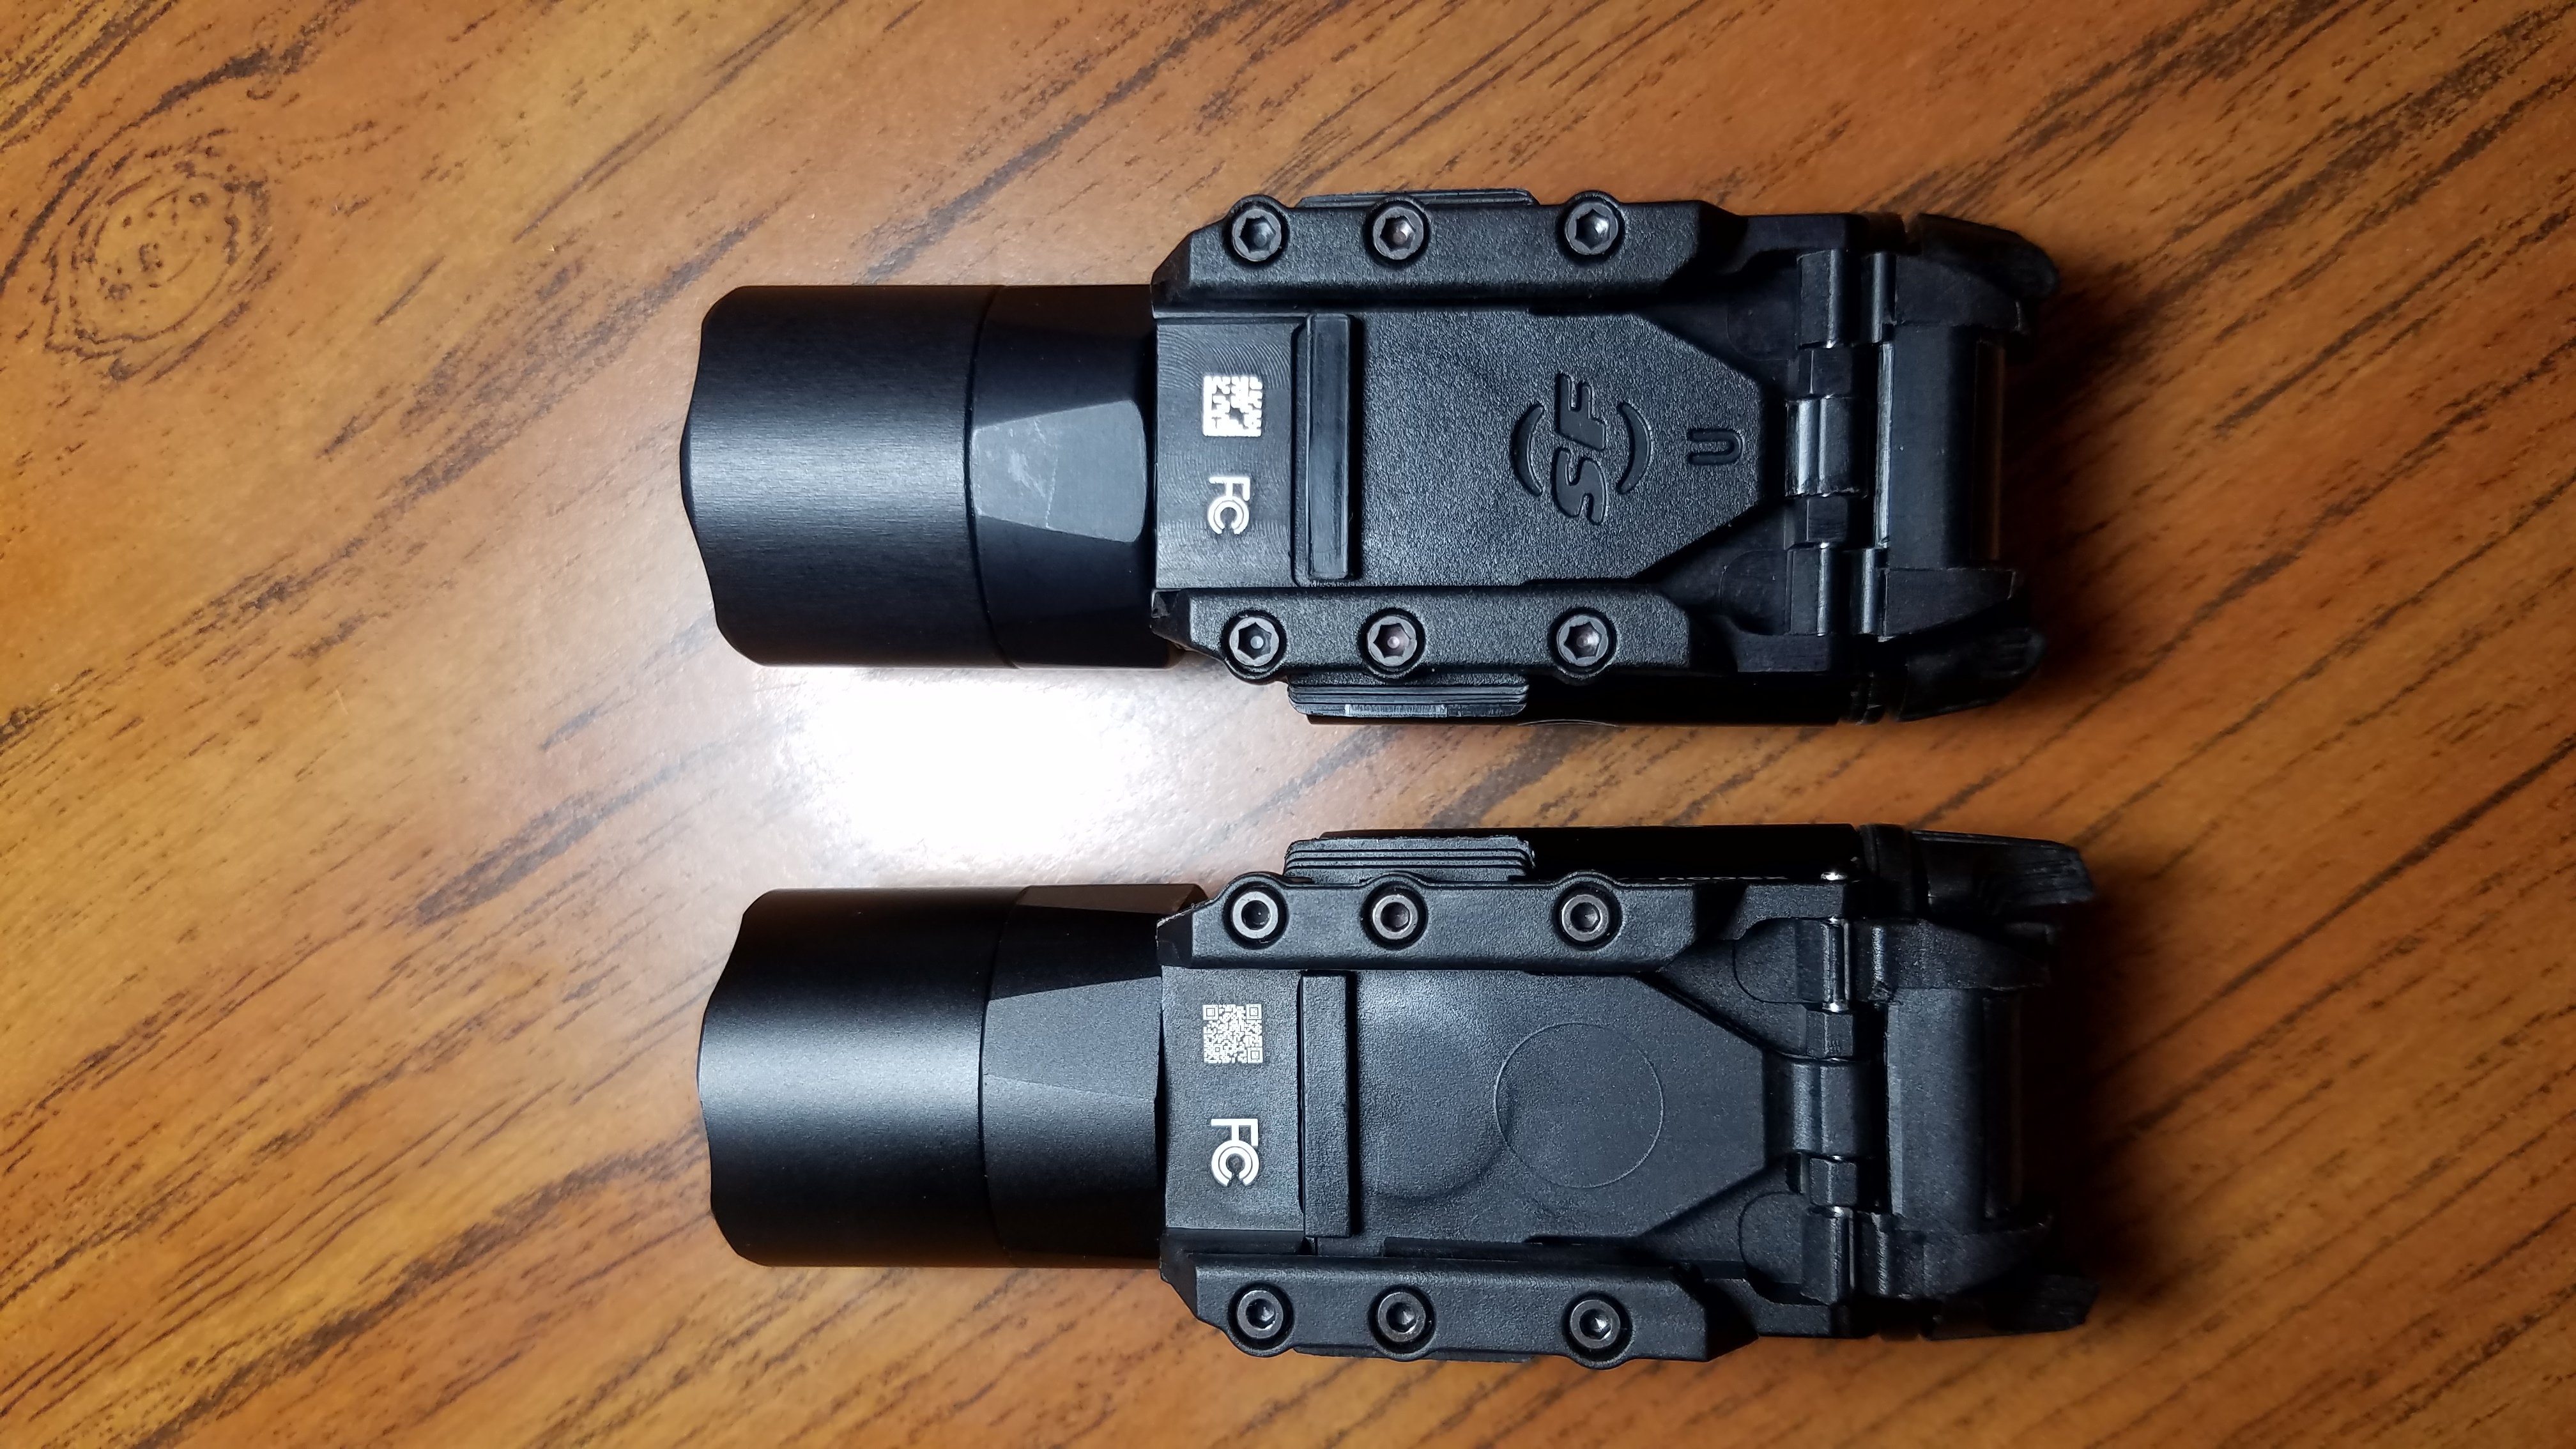 Fake Surefire x300u vs Real Surefire X300U